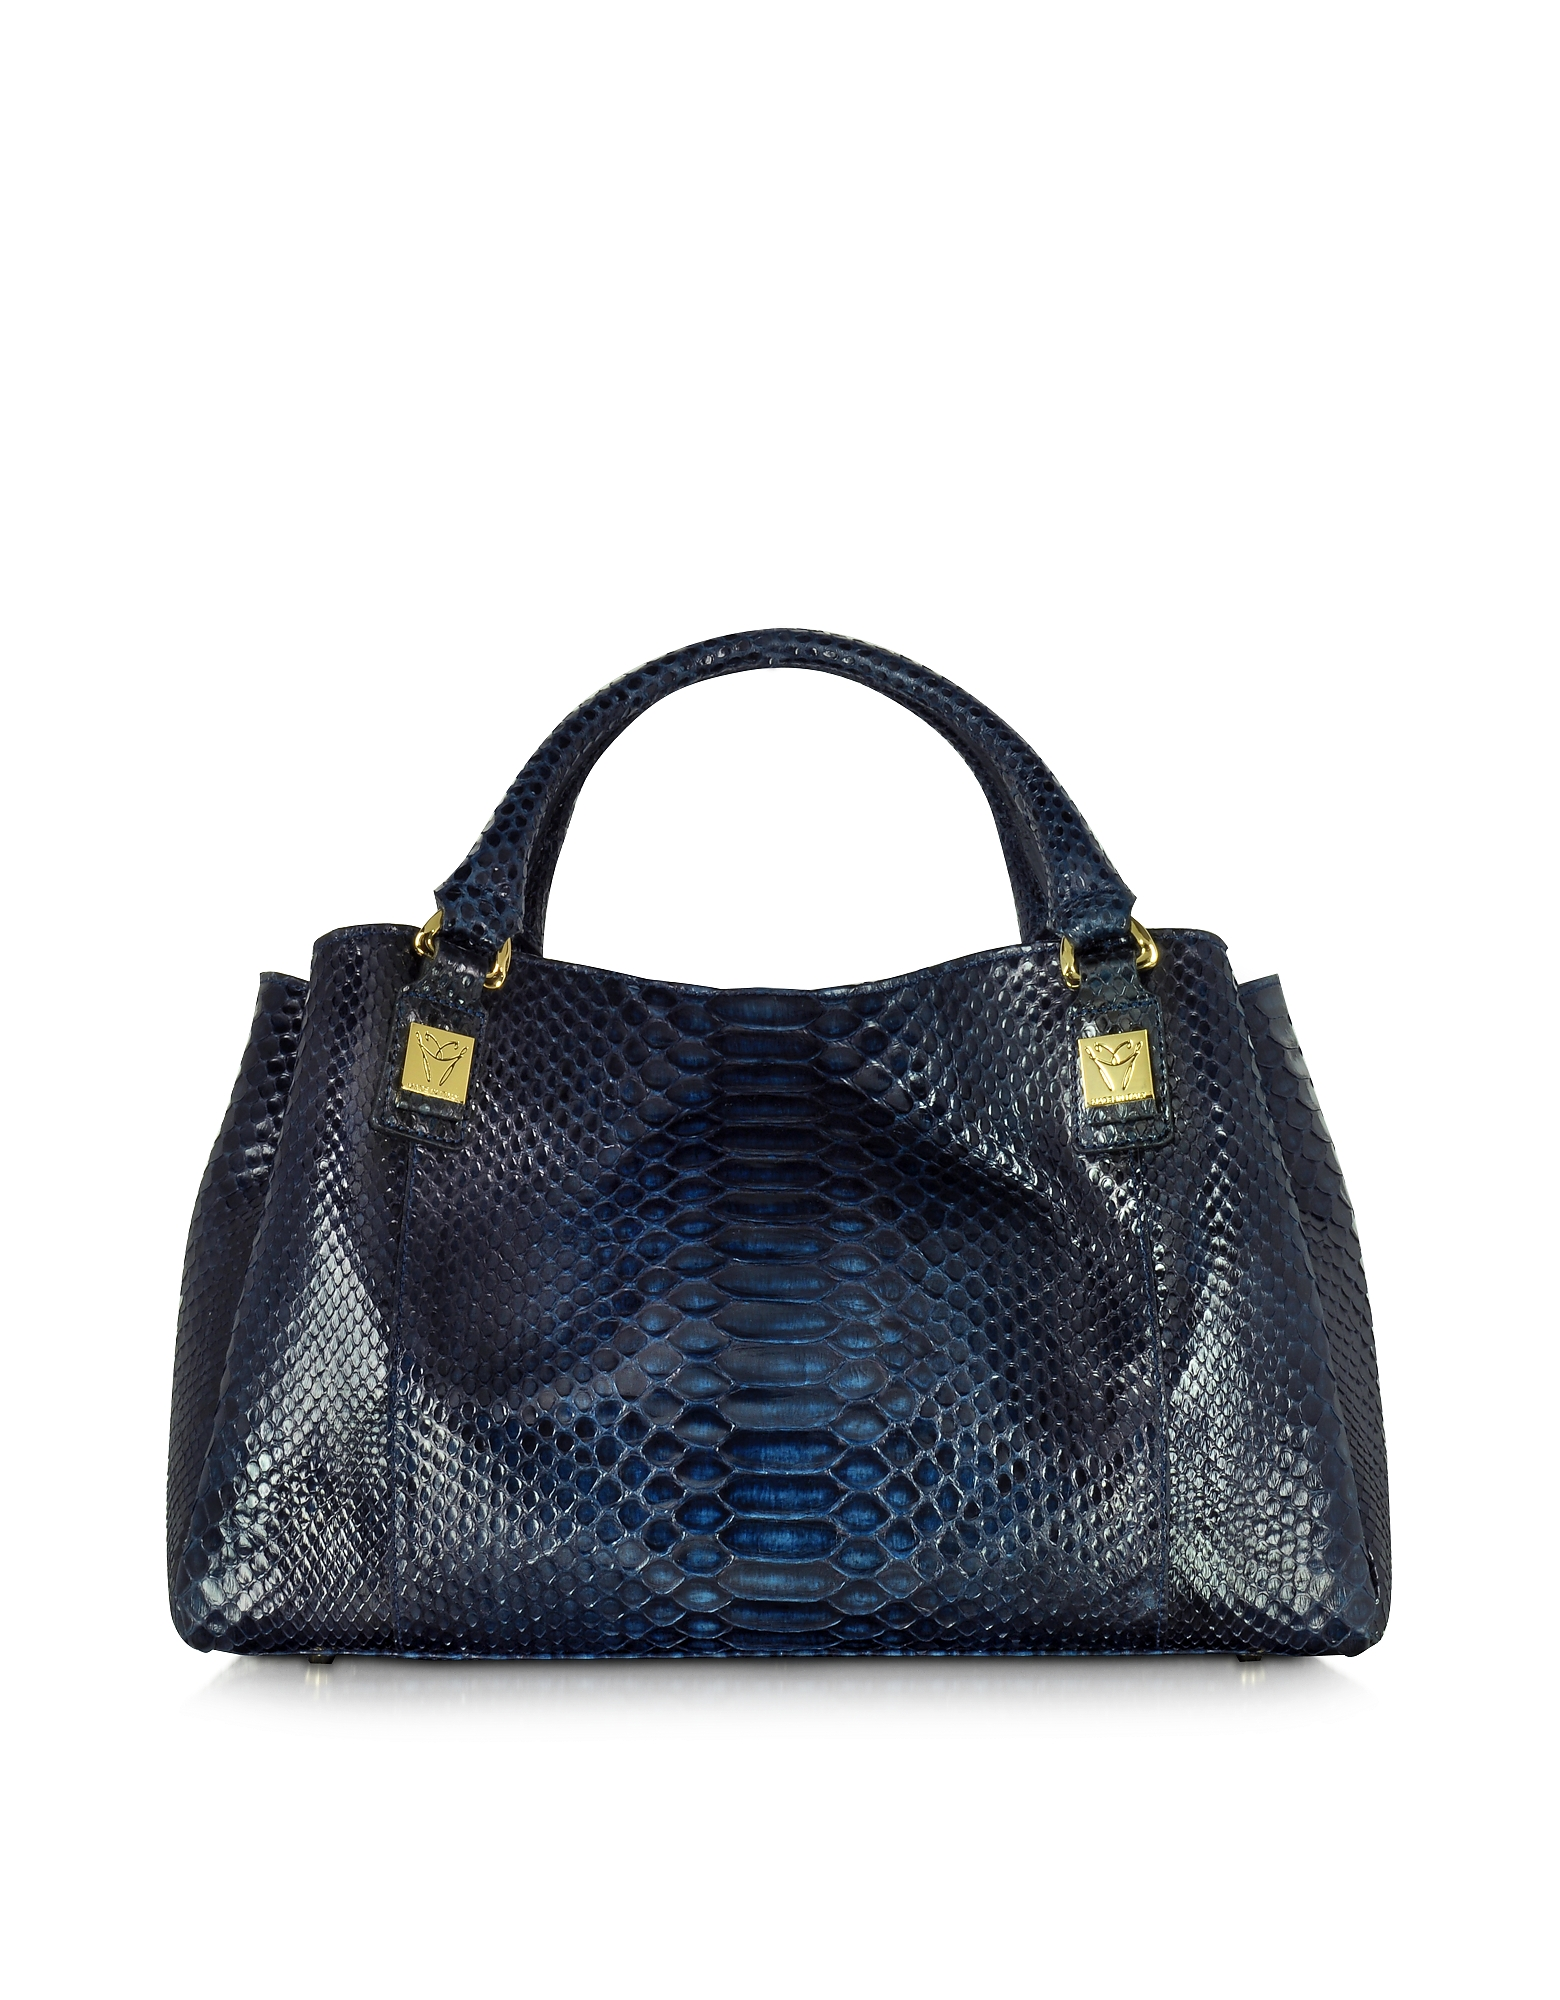 Midnight Blue Phyton Leather Satchel Bag